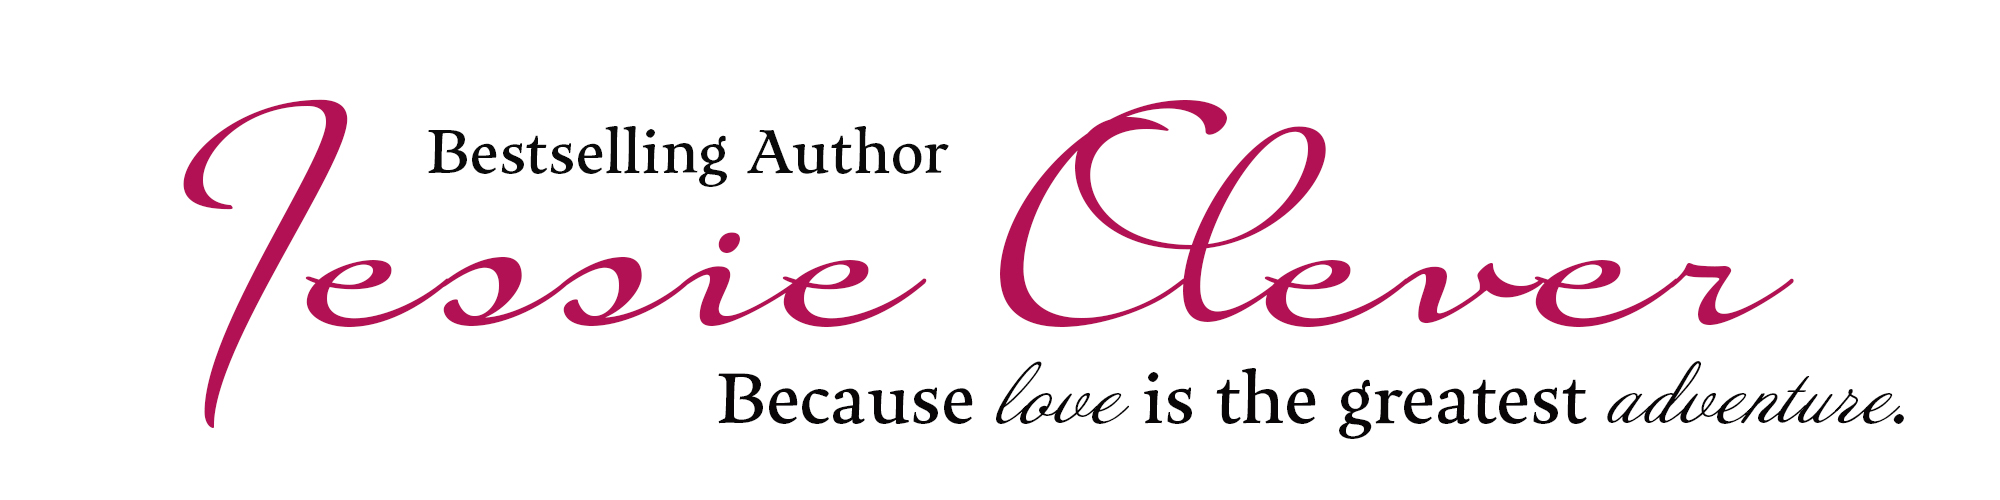 Historical and contemporary romance author Jessie Clever